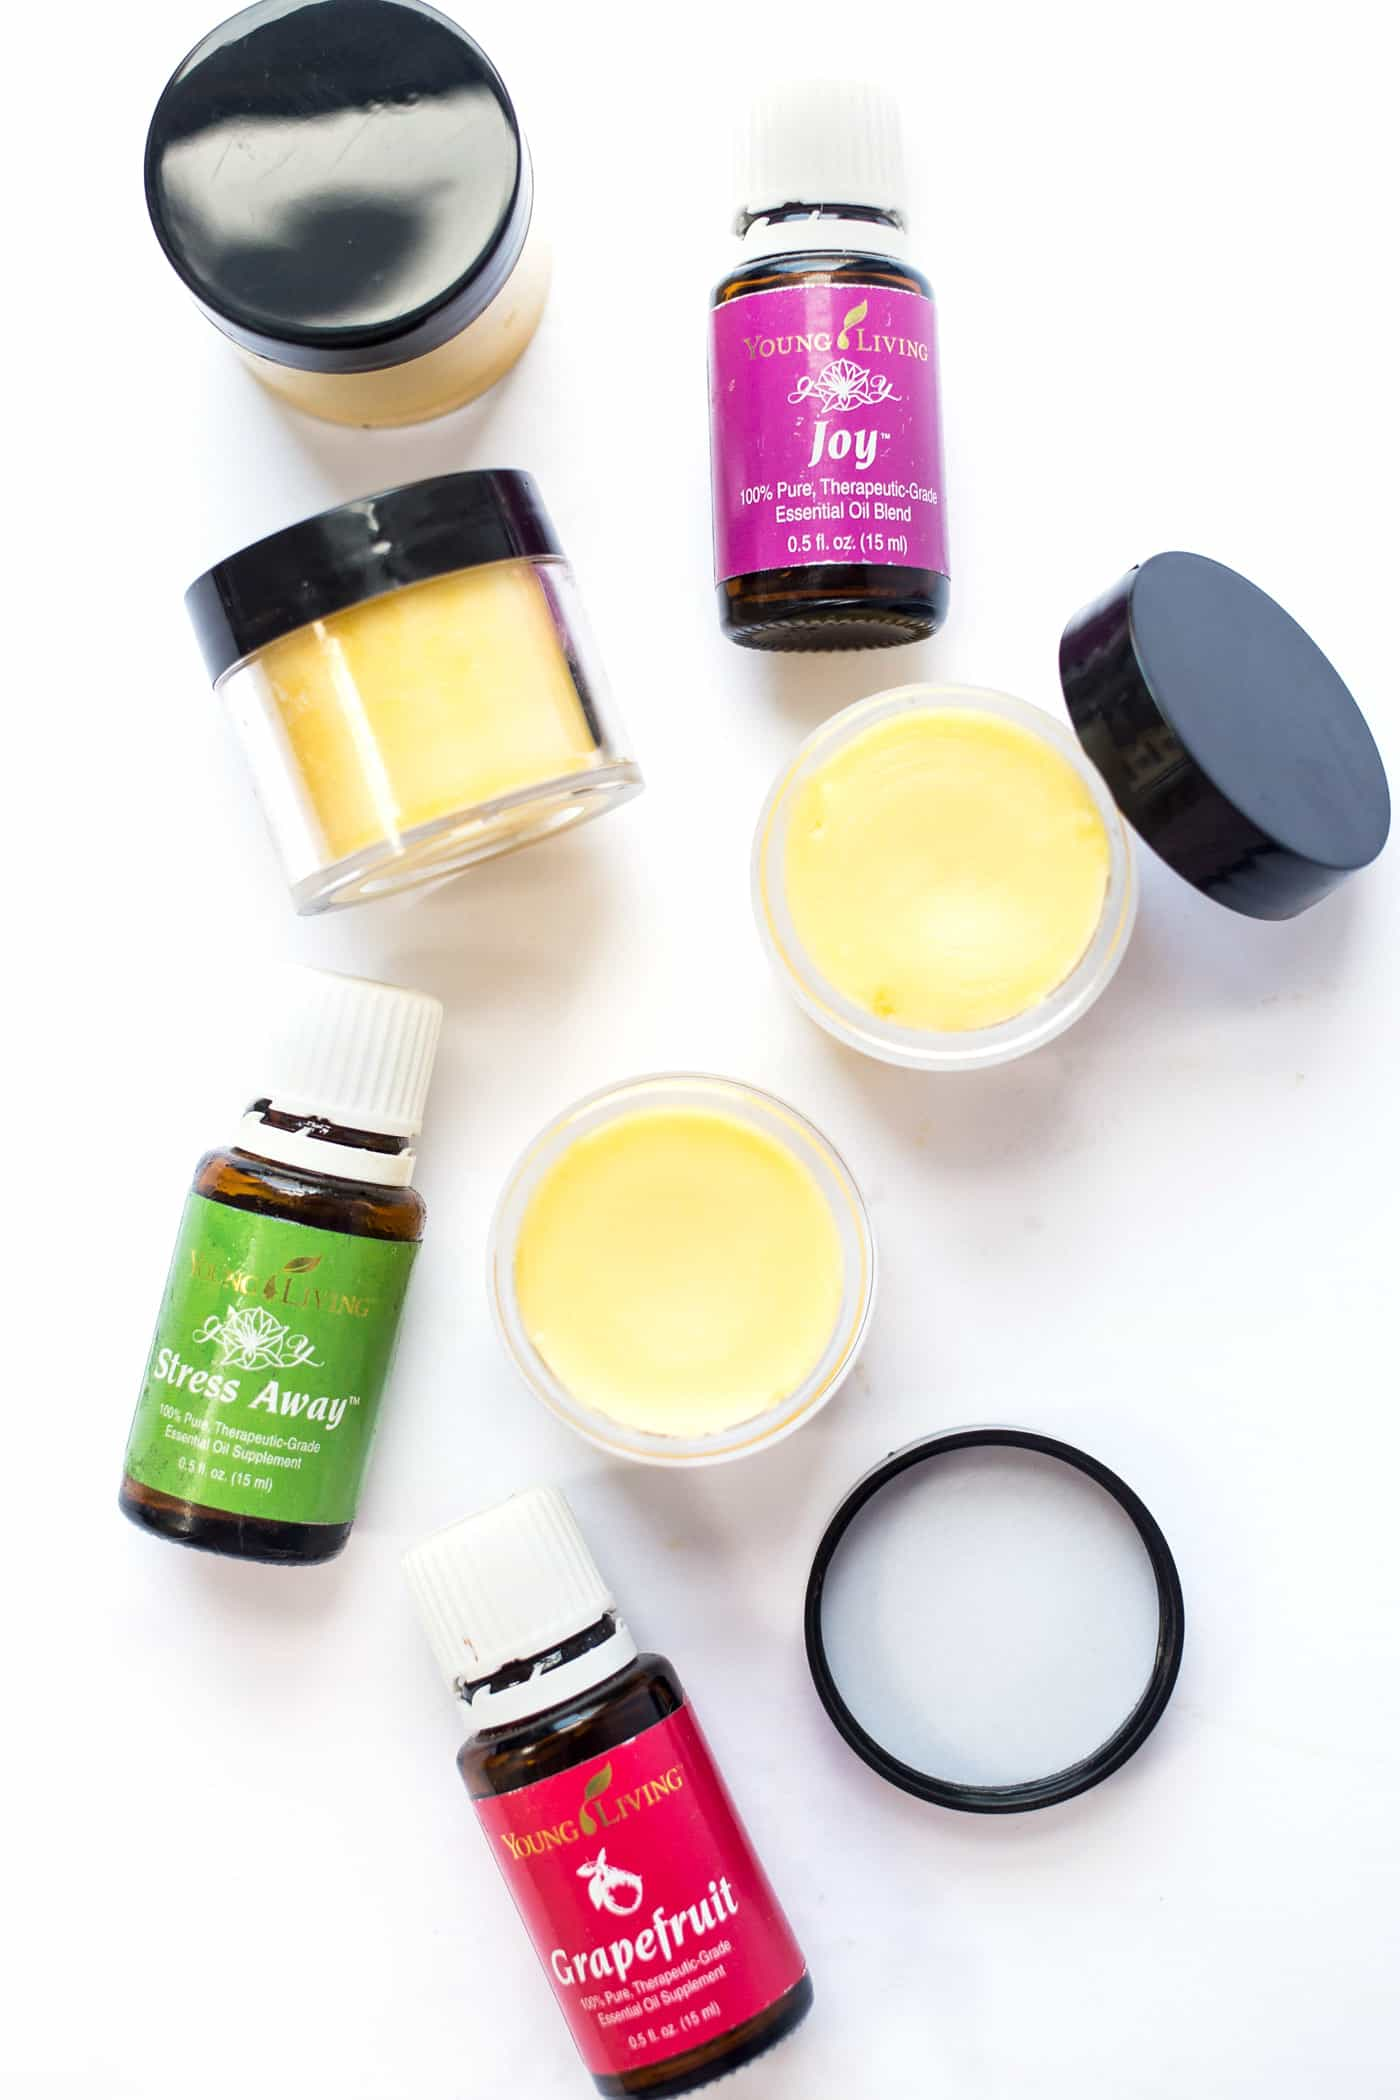 This DIY solid perfume is a wonderful addition to your natural beauty regime. It's made from only 100% pure ingredients and is totally customizable to your liking!